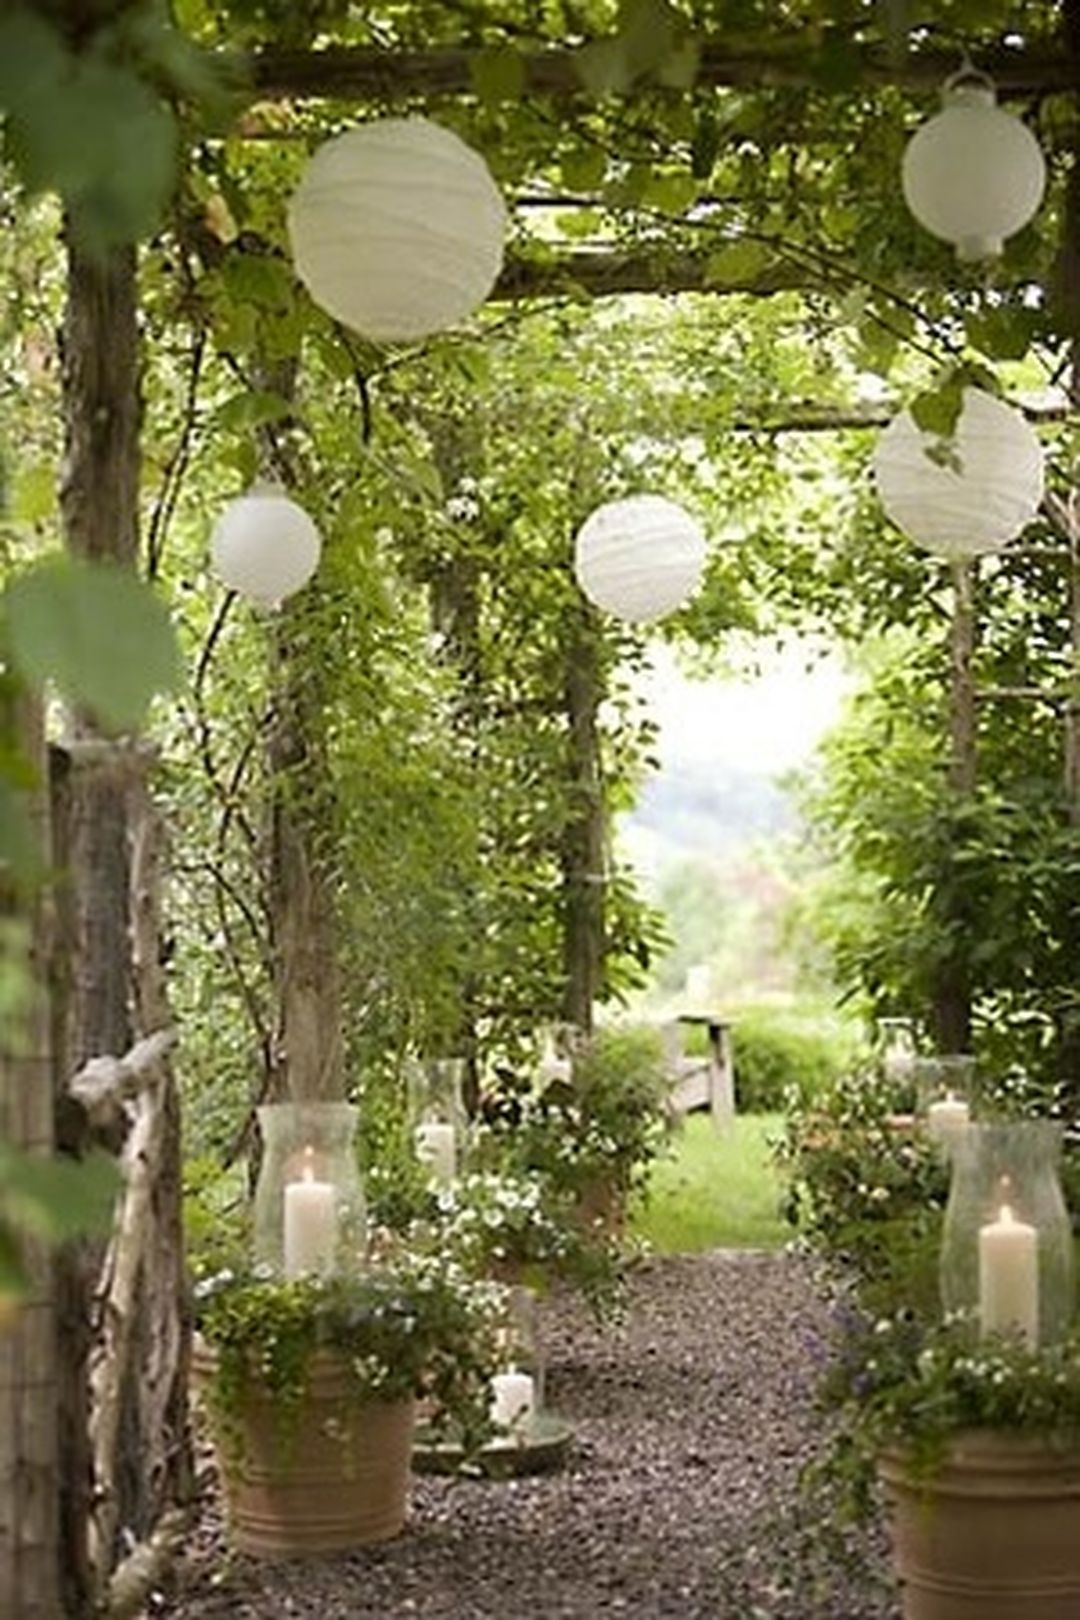 Lighting Inspiration for Pergola - Dream about Spring - note container  plantings with hurricane globe and candles! - 17 Best Climbing Plants For Pergolas And Trellises Garden